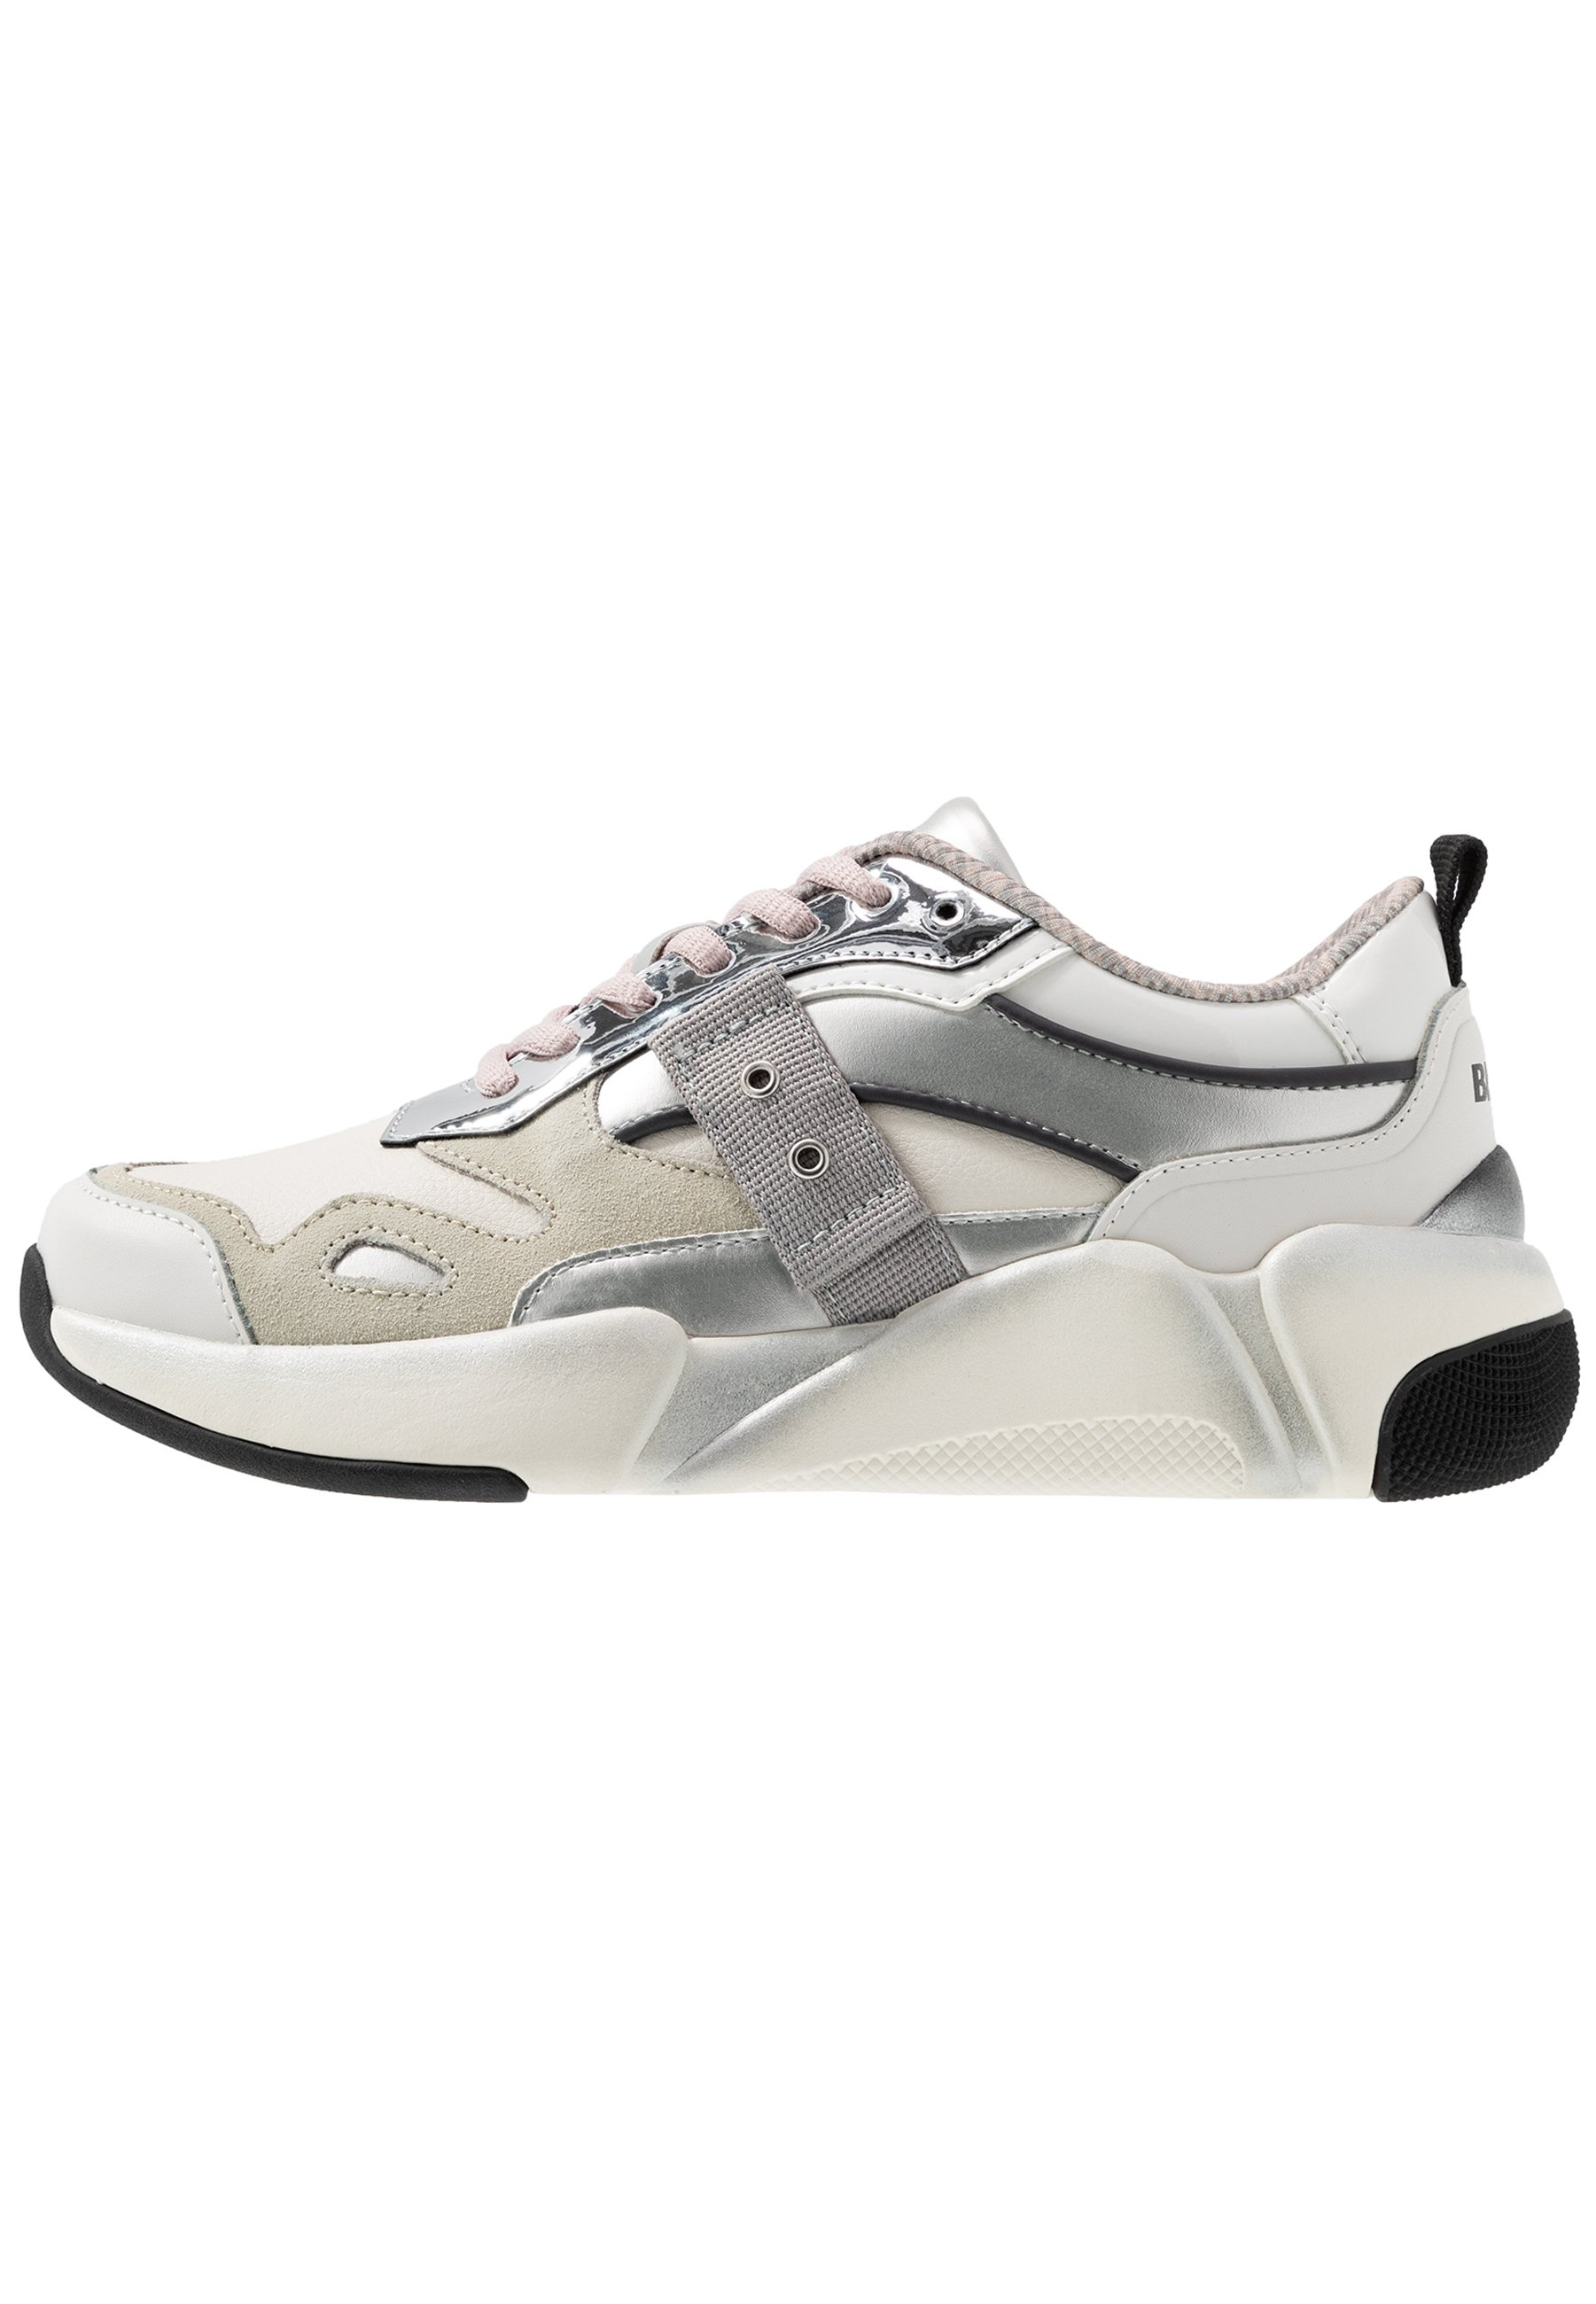 Blauer Sneakers - white/silver